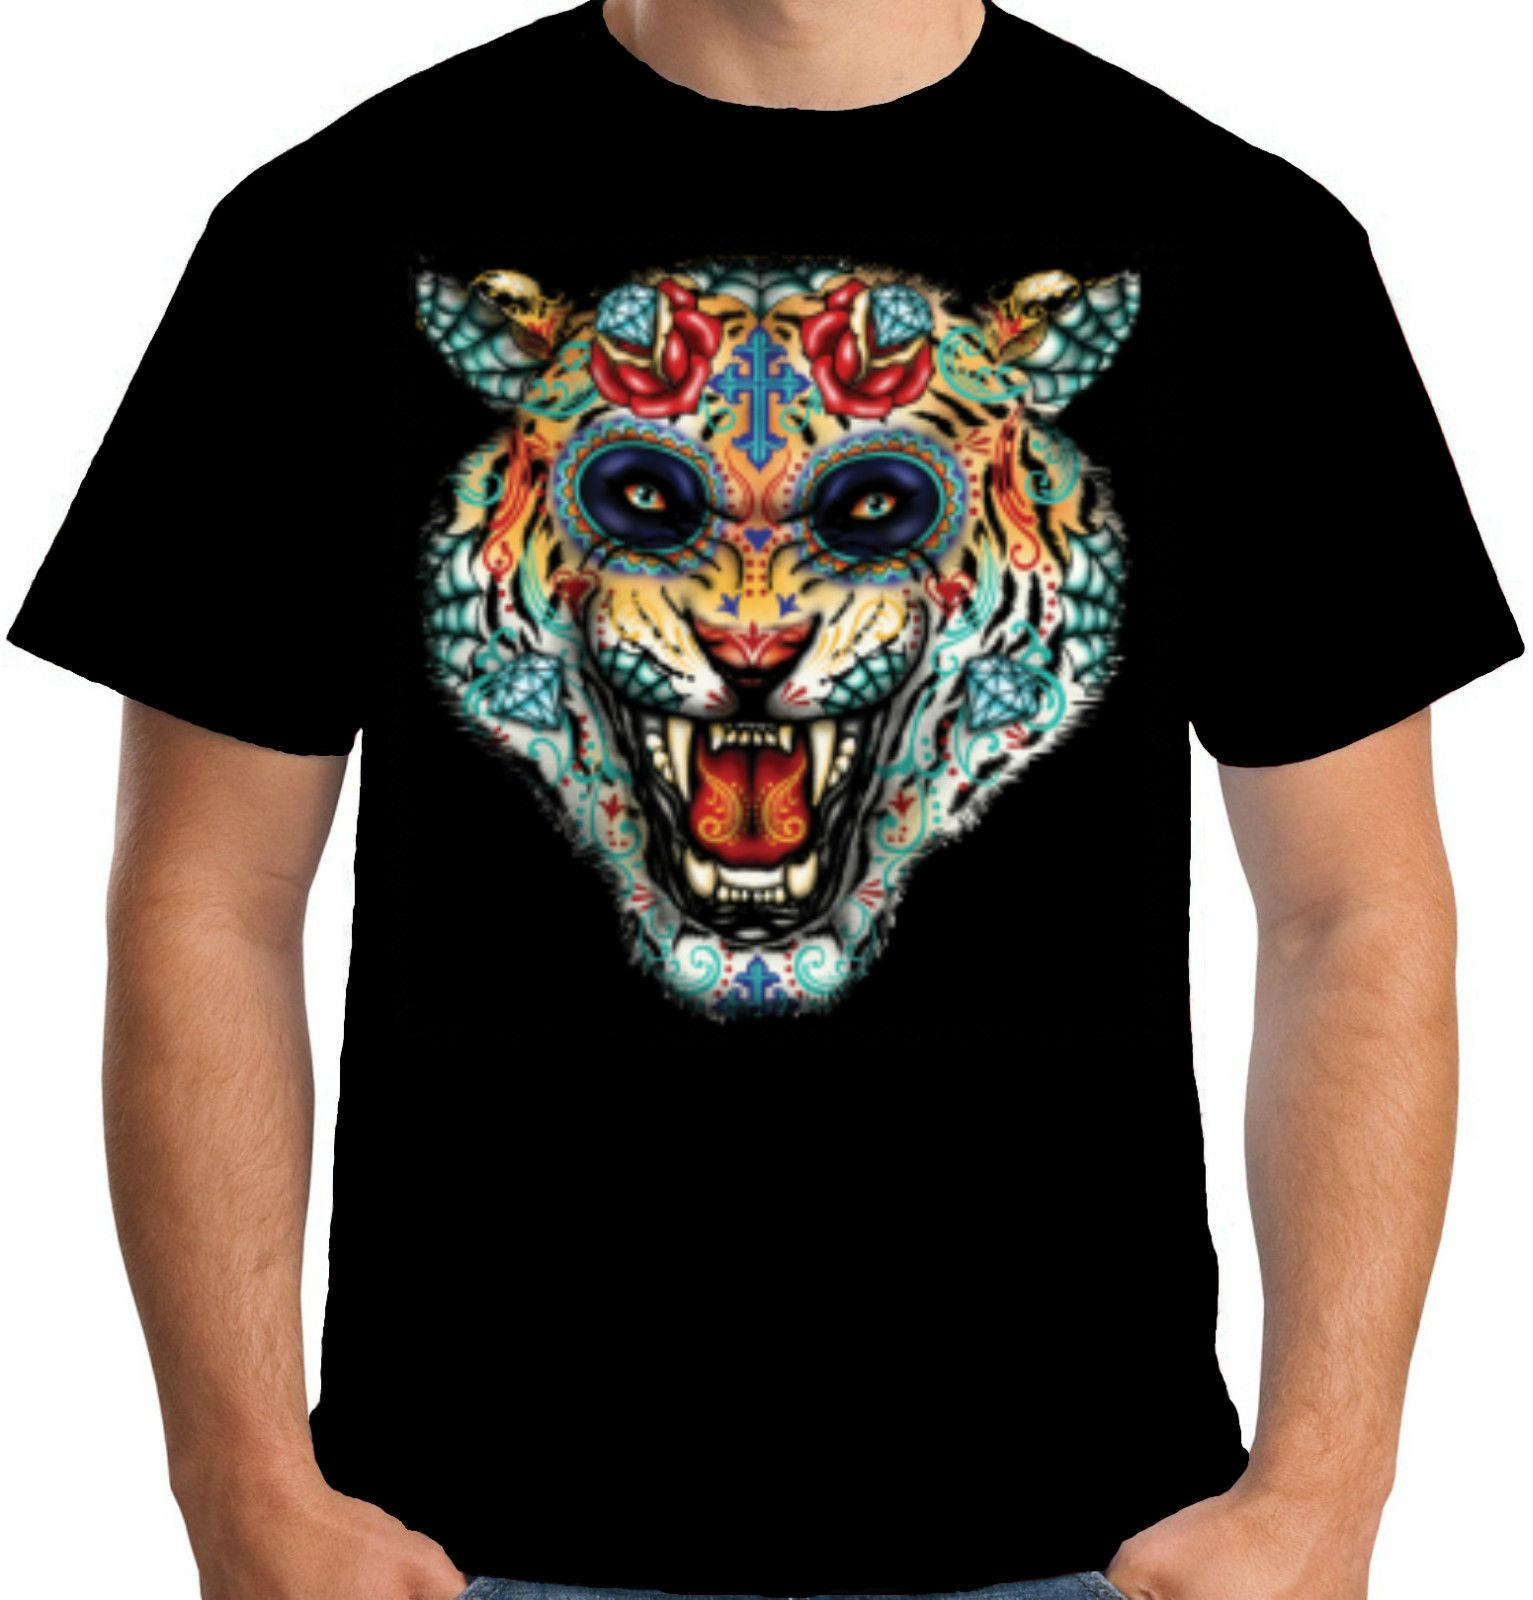 cb3de696fbe7f Velocitee Mens Tiger Tattoo Face T Shirt Day Of The Dead Hardy Jerry W17021  Design Shirts Cool Tshirts From Goldshop76, $11.48| DHgate.Com